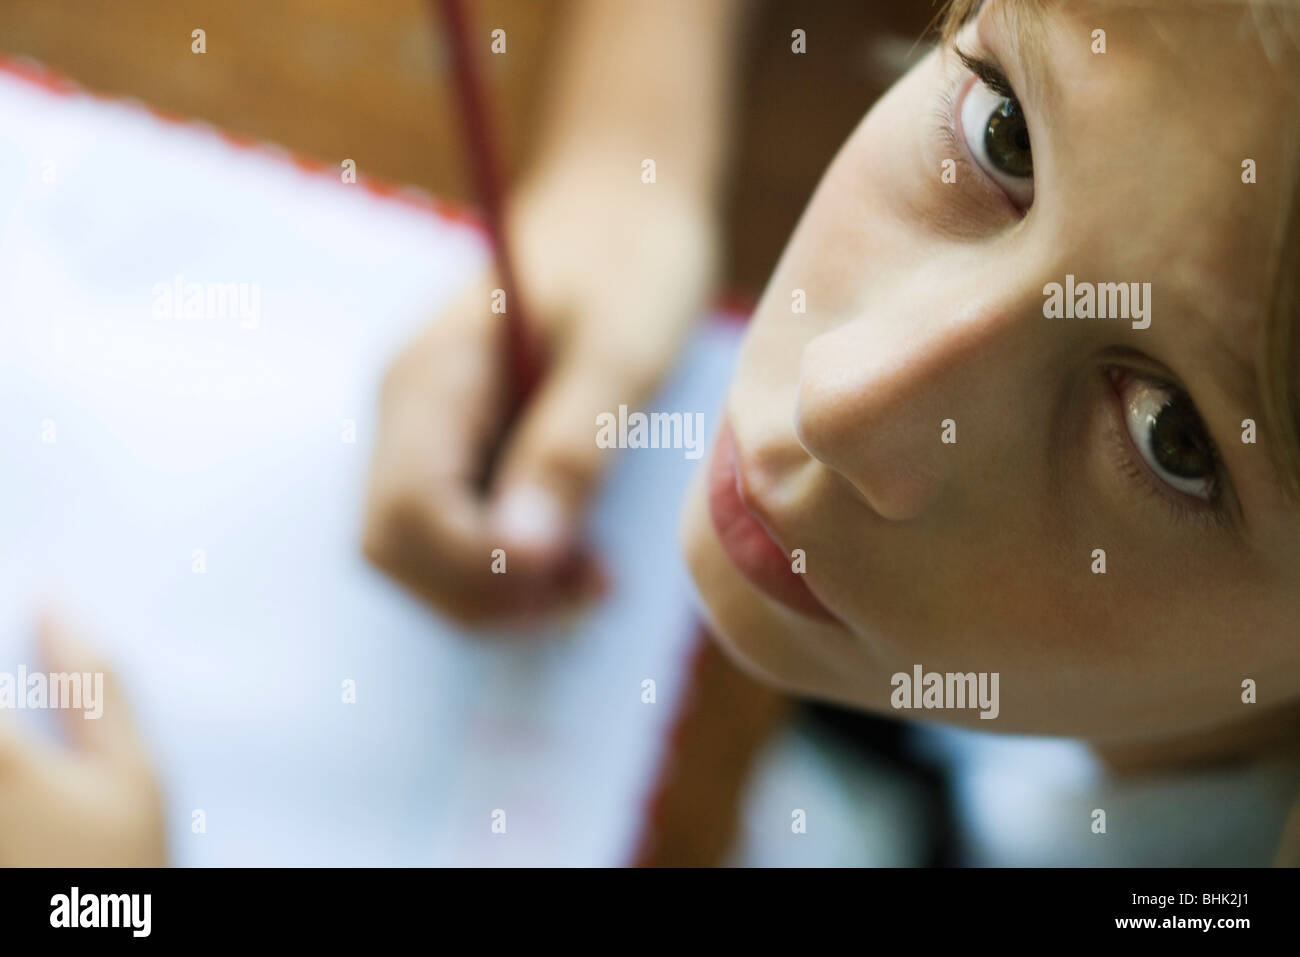 Boy writing in notebook, pausing work to look up at camera - Stock Image